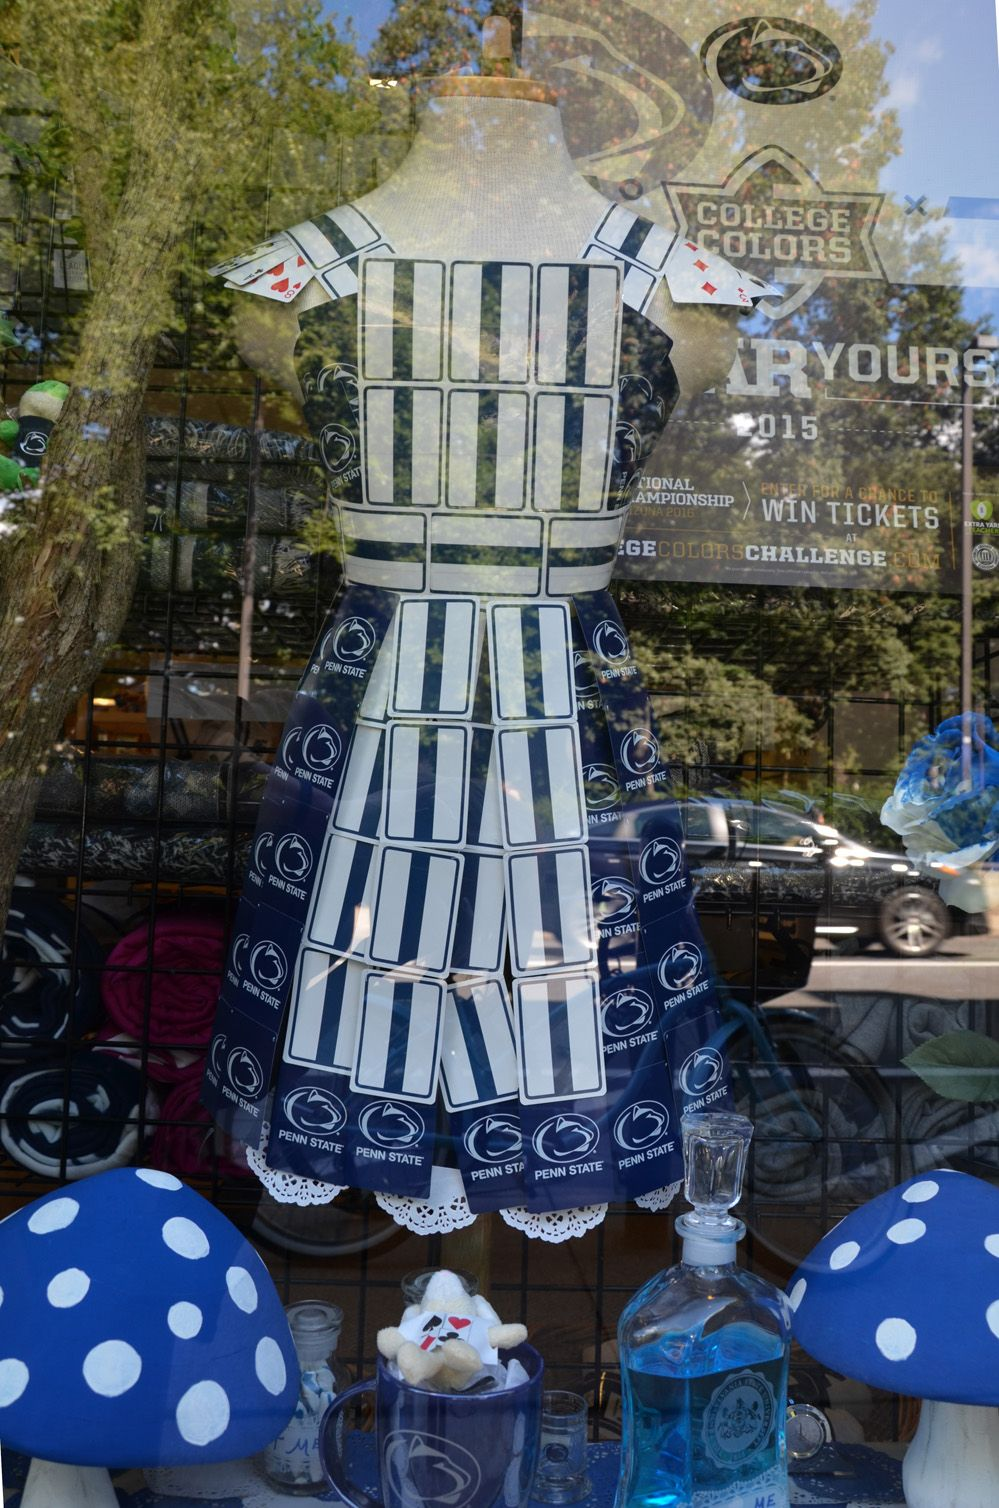 White apron in store - A Store Along College Avenue Displays An Apron Made Of Blue And White Cards And Tickets